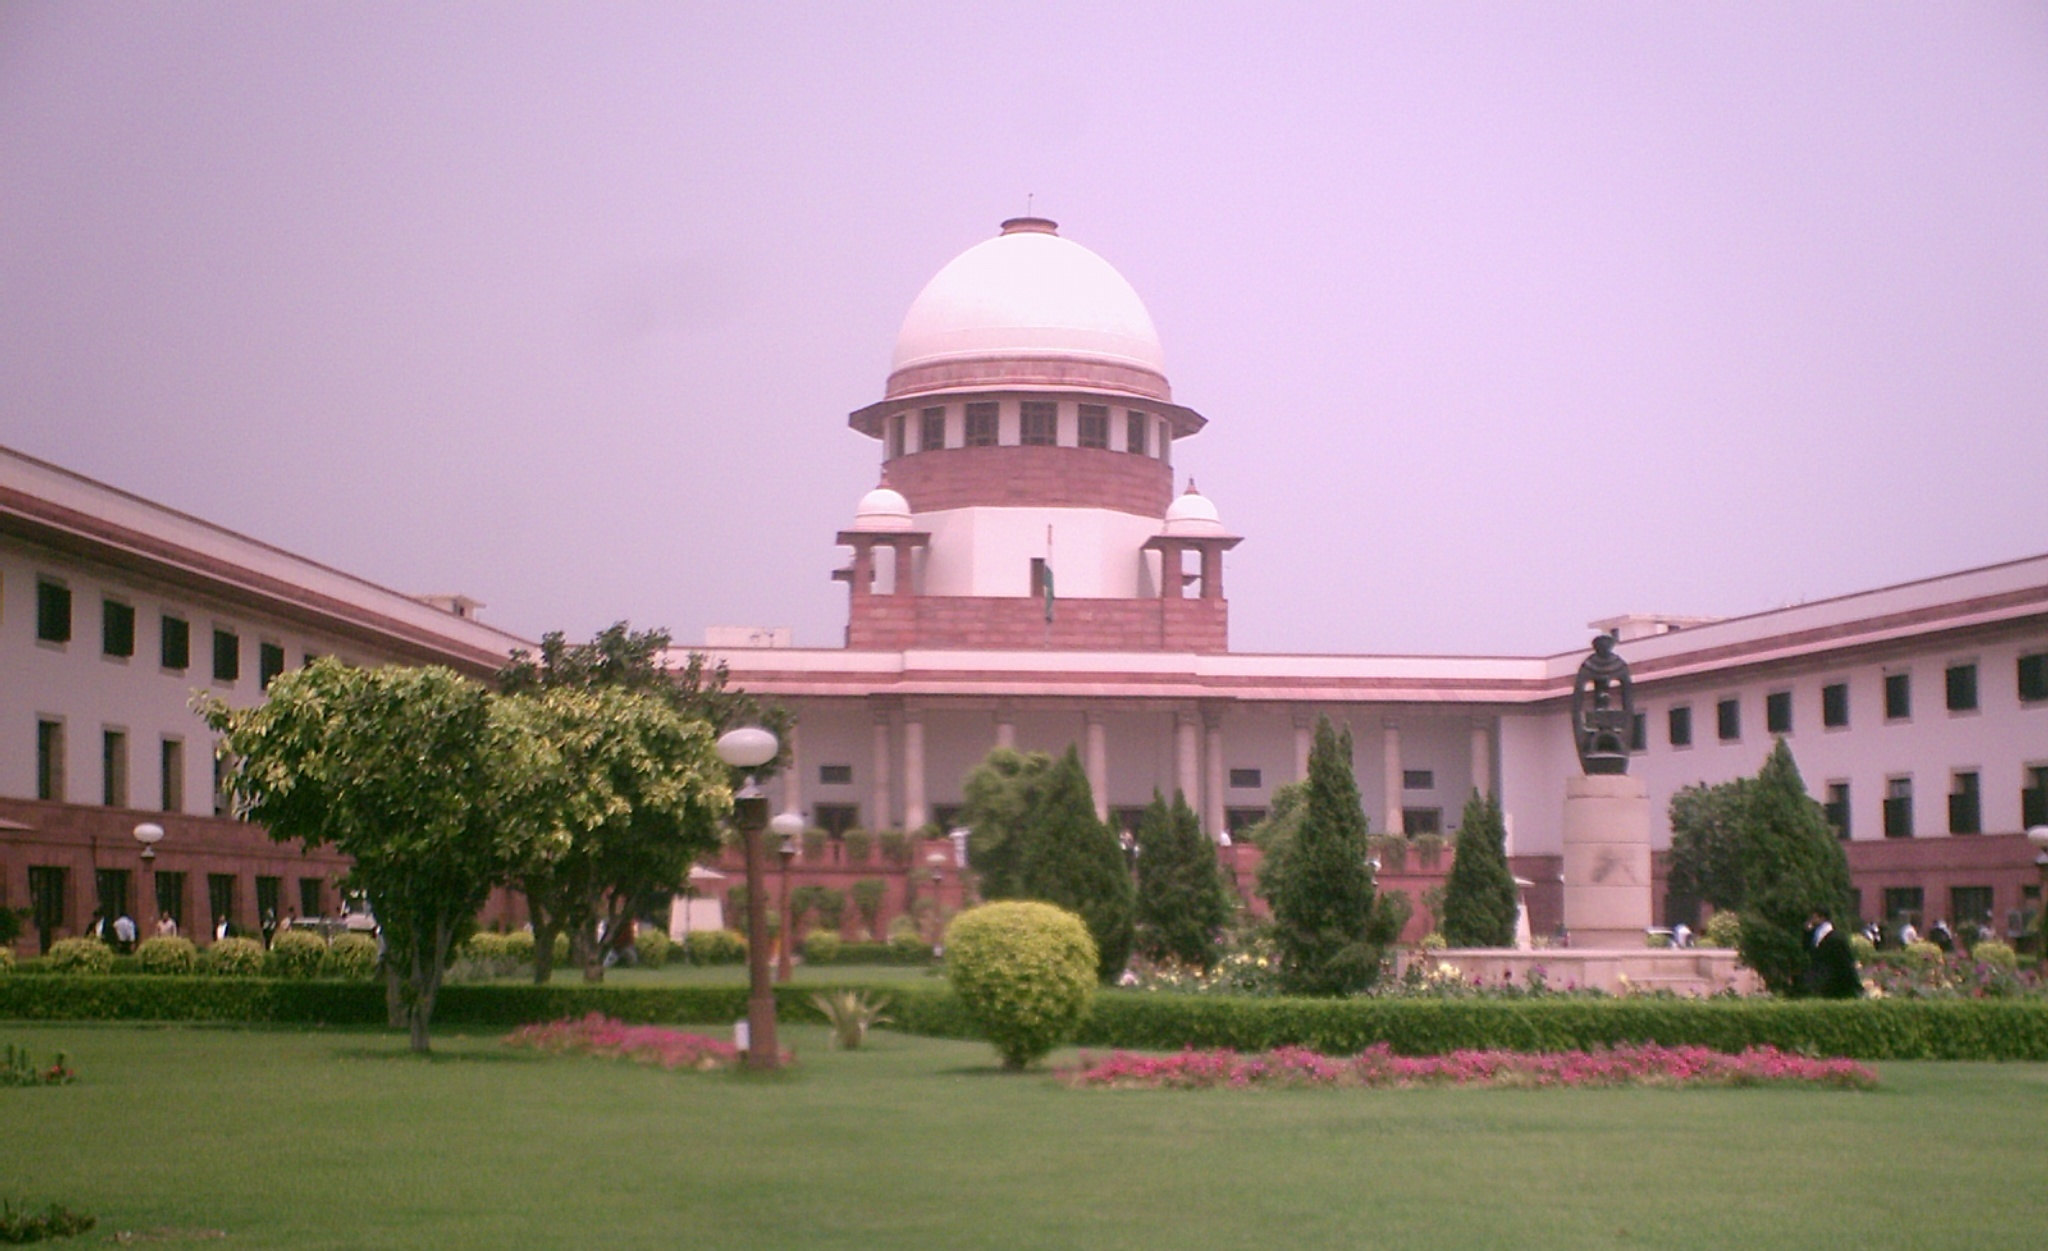 The Supreme Court said that children and the main road cannot be obstructed for a long time.